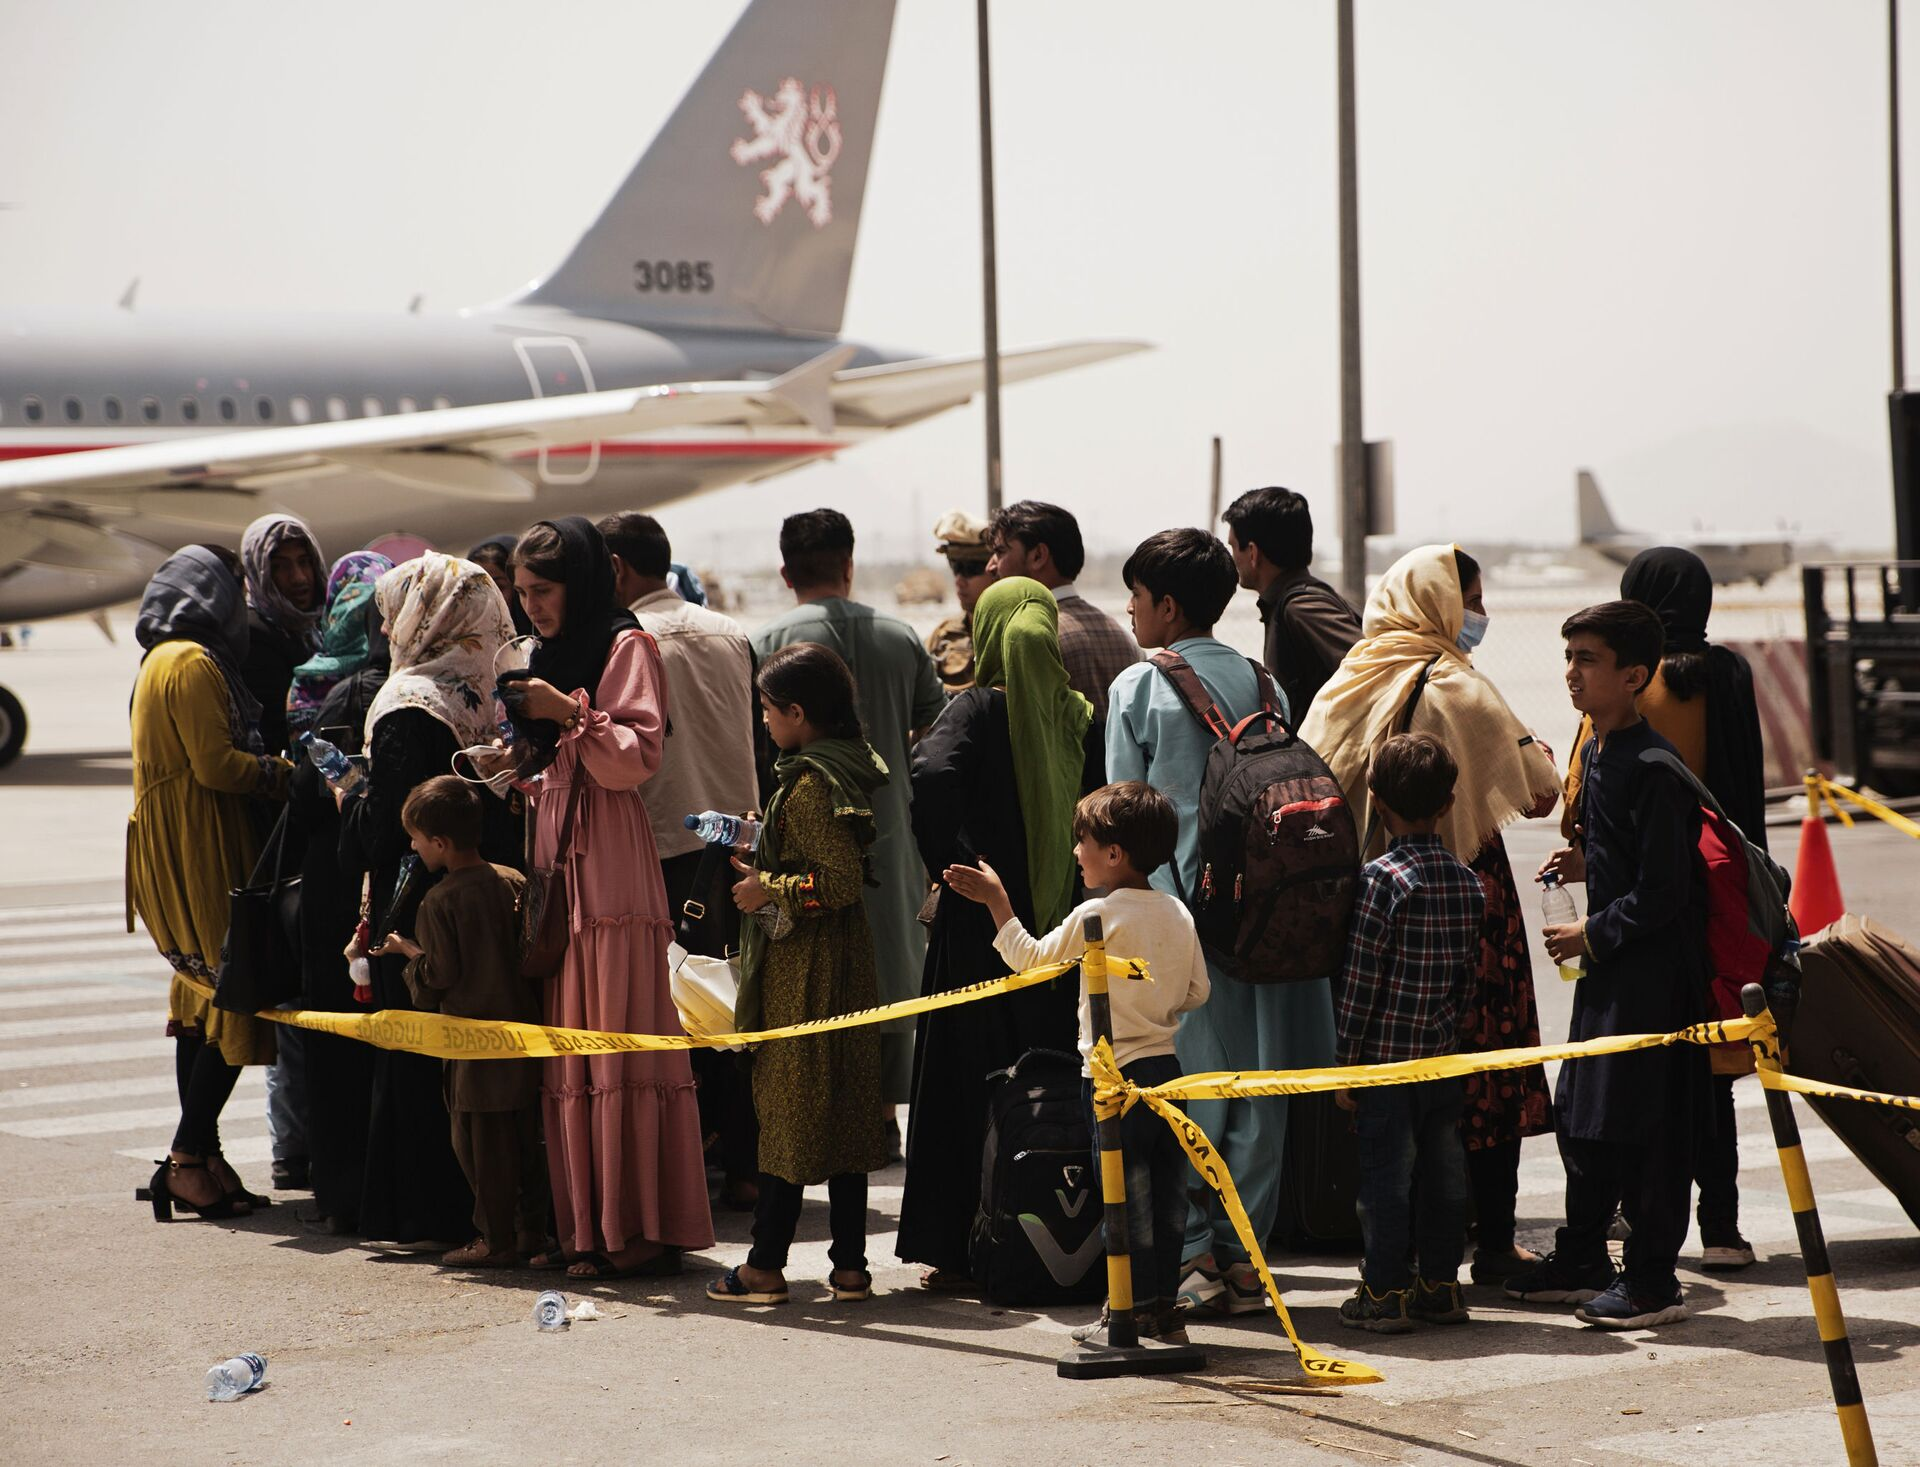 In this photo provided by the U.S. Marine Corps, civilians prepare to board a plane during an evacuation at Hamid Karzai International Airport, Kabul, Afghanistan, Wednesday, Aug. 18, 2021.  - Sputnik International, 1920, 07.09.2021